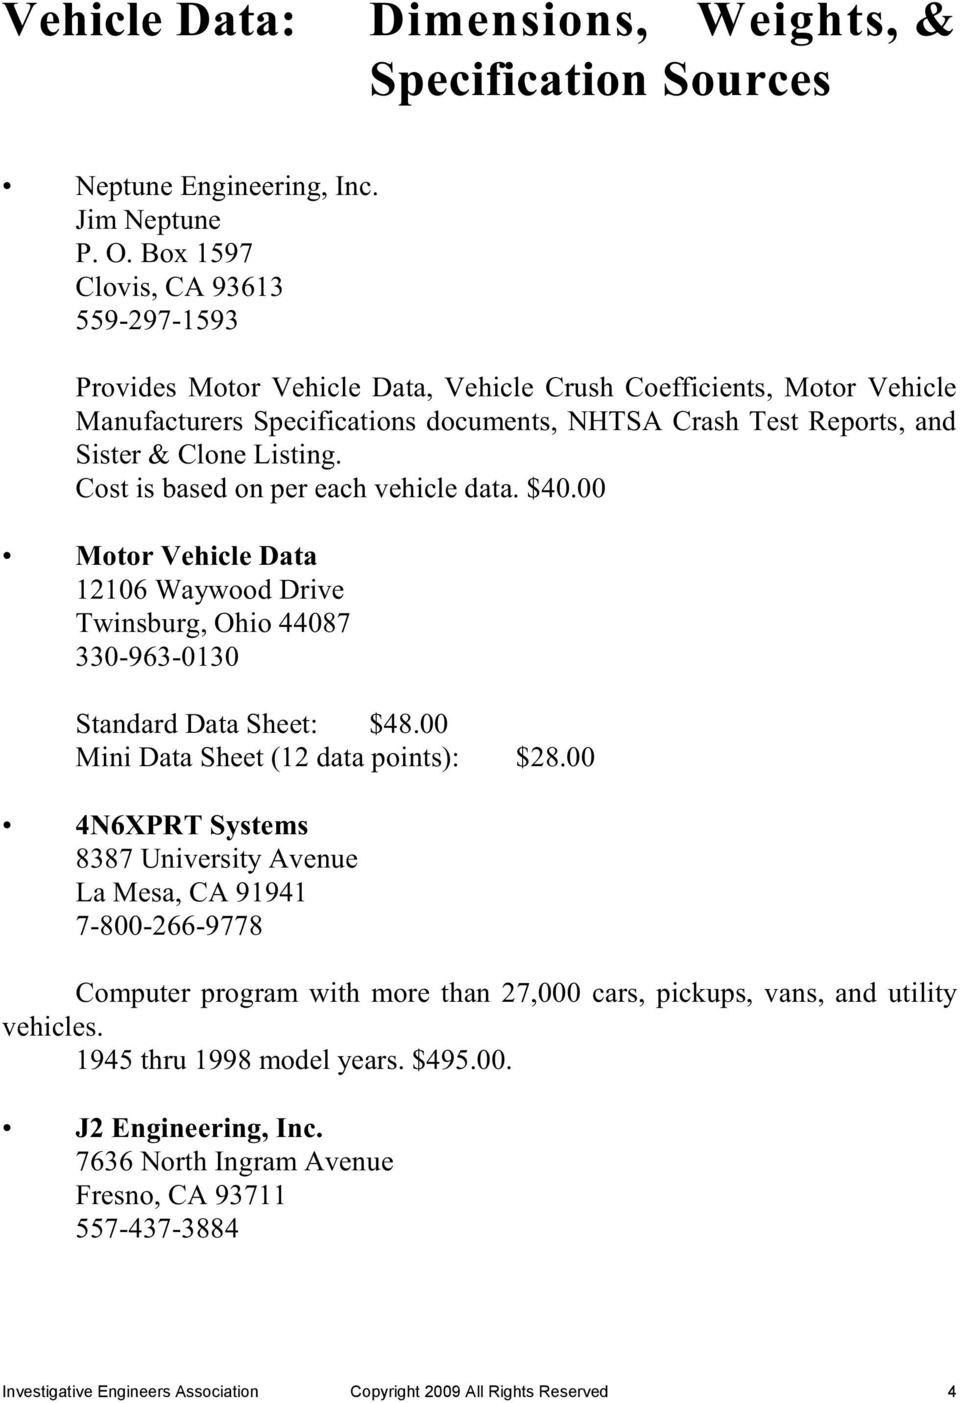 Listing. Cost is based on per each vehicle data. $40.00 Motor Vehicle Data 12106 Waywood Drive Twinsburg, Ohio 44087 330-963-0130 Standard Data Sheet: $48.00 Mini Data Sheet (12 data points): $28.